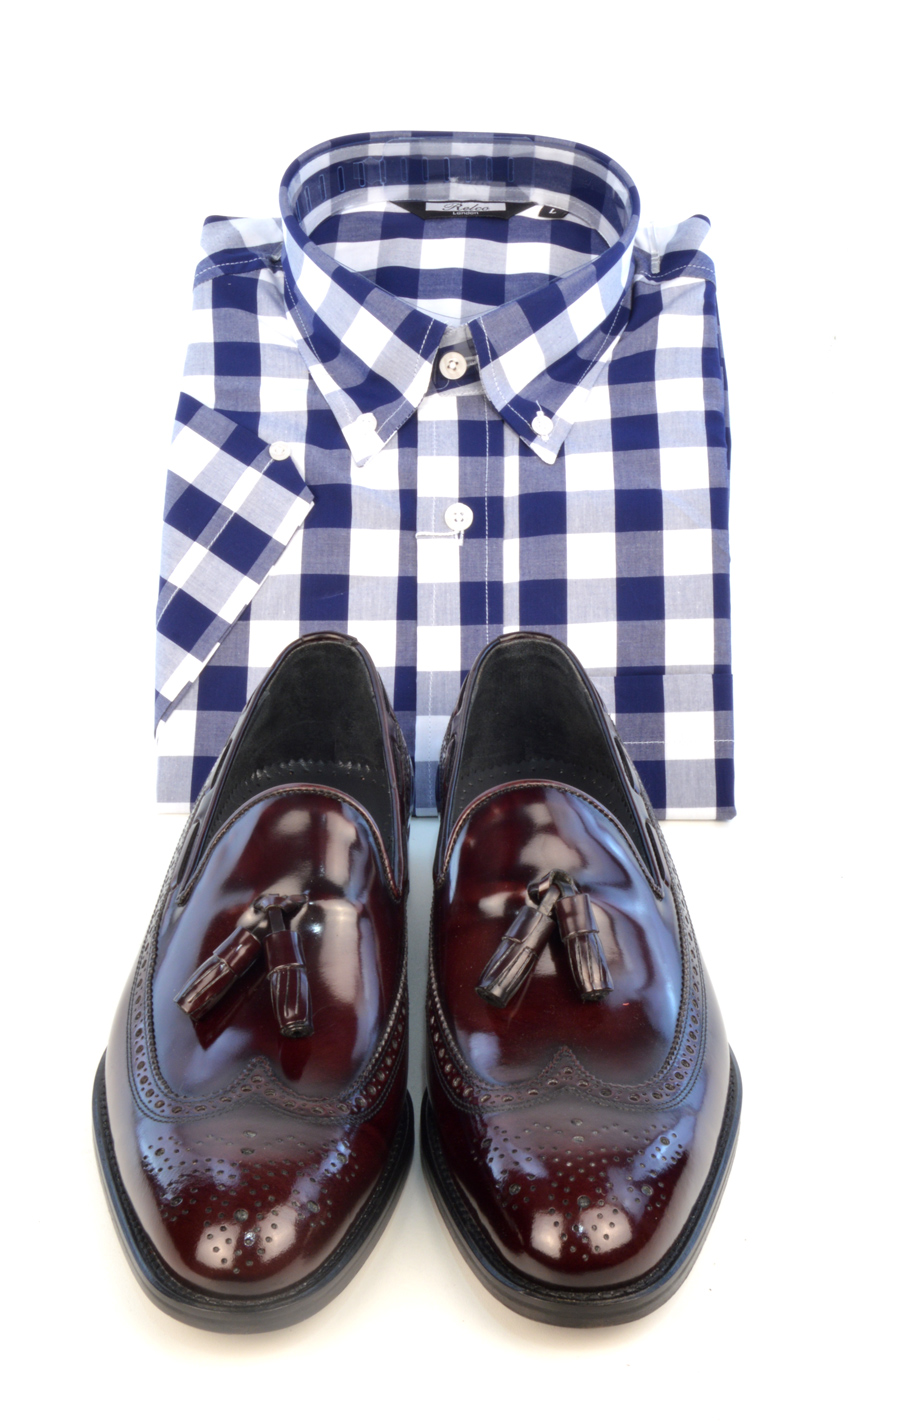 modshoes-check-shirt-with-oxblood-loafer-beckley